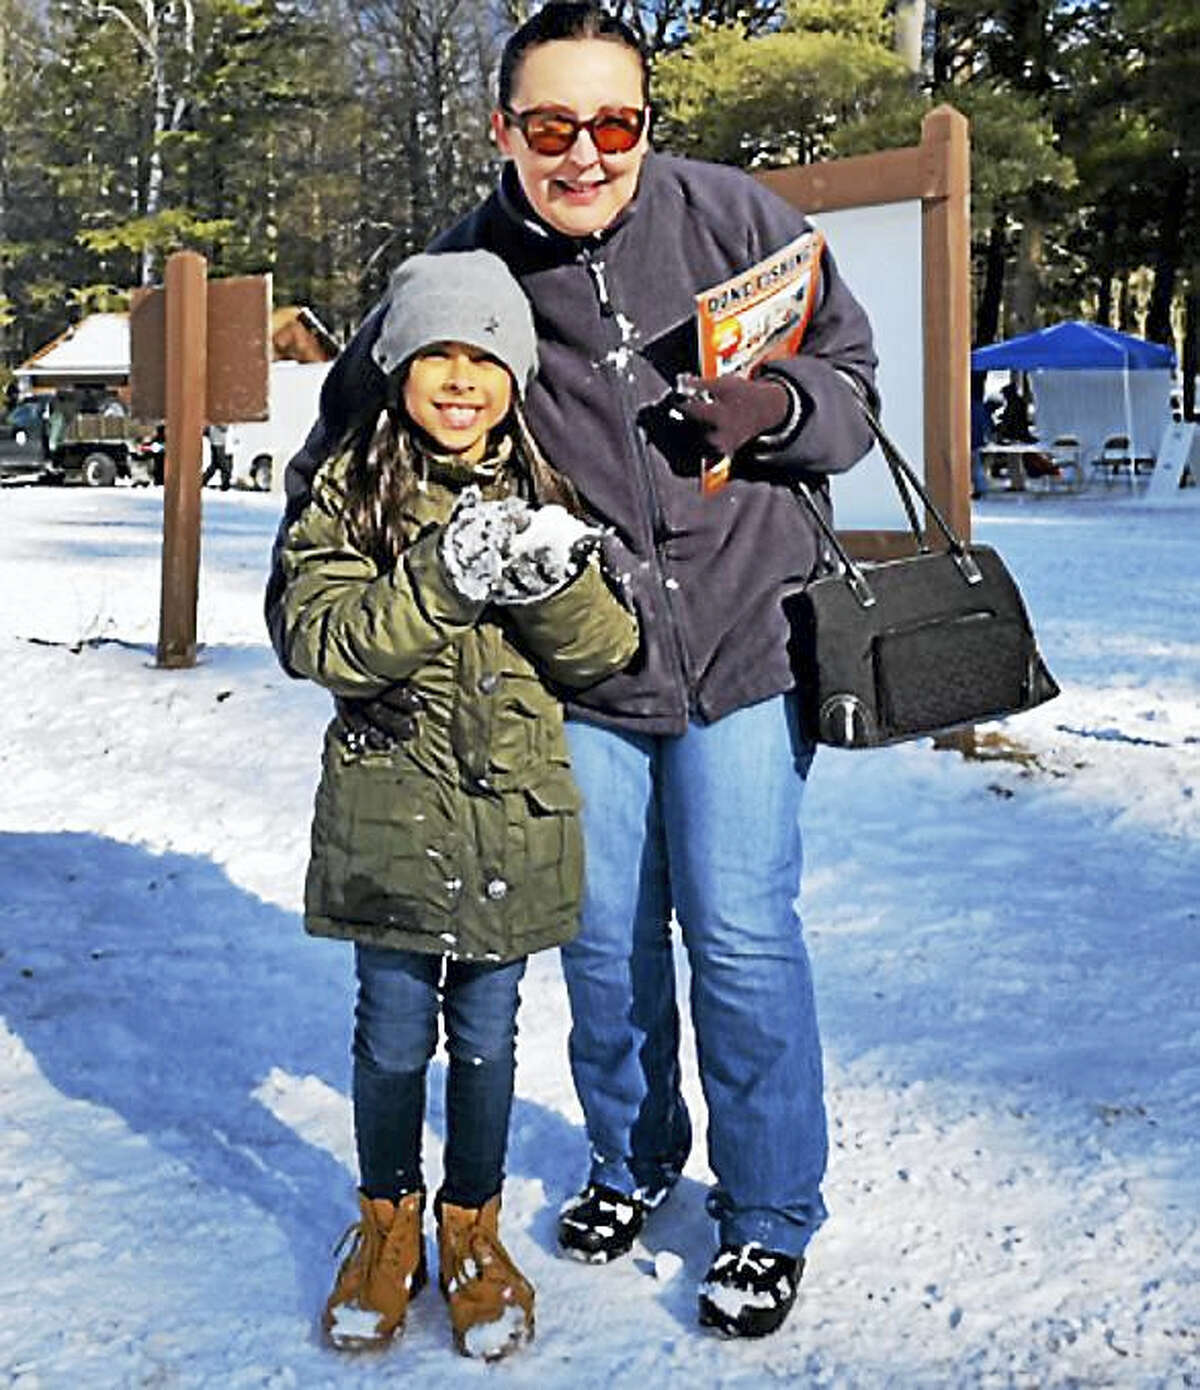 Aliana Abreu, 8, and her grandmother Maria Abreu, of Torrington, attended the 10th annual No Child Left Inside Winter Festival on Saturday at Burr Pond State Park. About 400 people turned out to participate in outdoor activities.